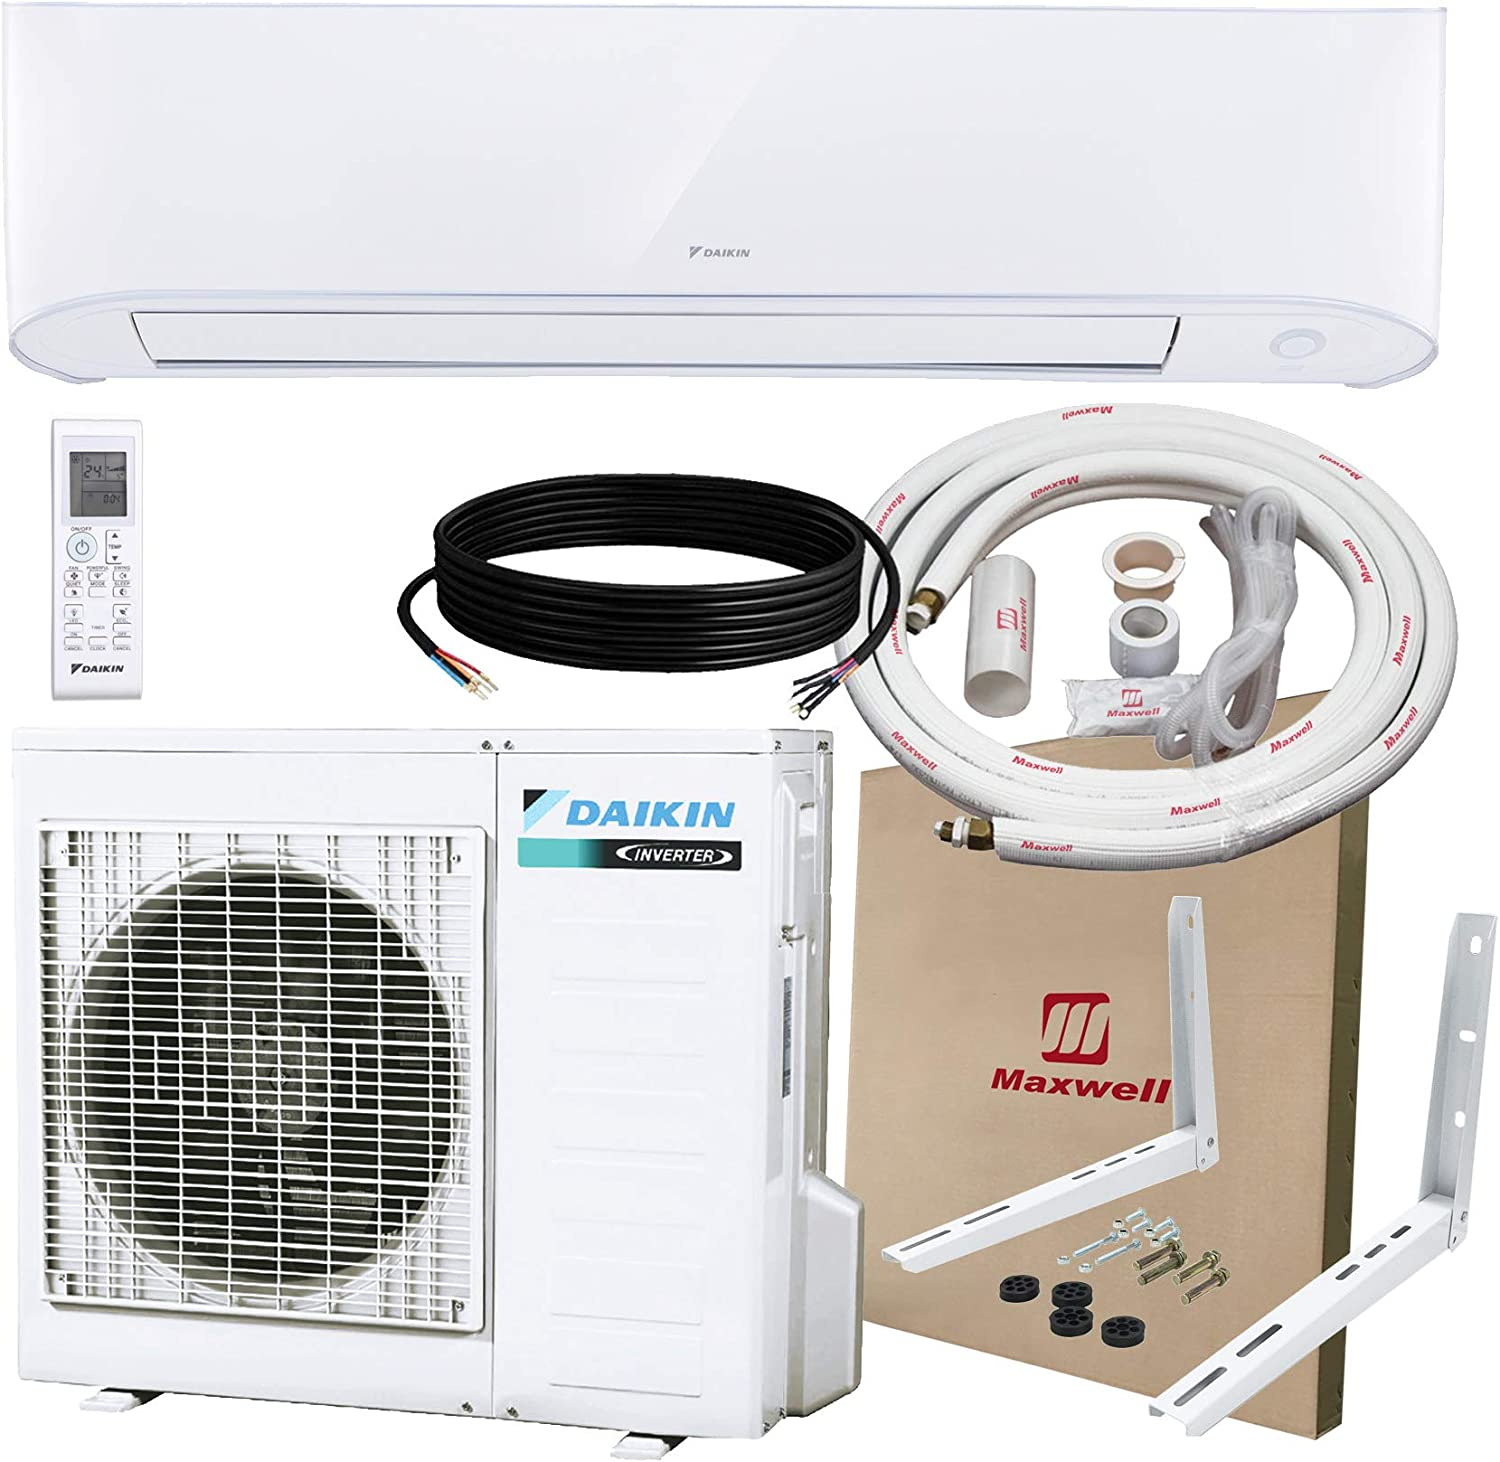 DAIKIN 12,000 BTU 17 SEER Wall-Mounted Ductless Mini-Split A C Heat Pump System Maxwell 25-ft Installation Kit Wall Bracket 230V 10 Year Limited Warranty 12,000 BTU_208-230V